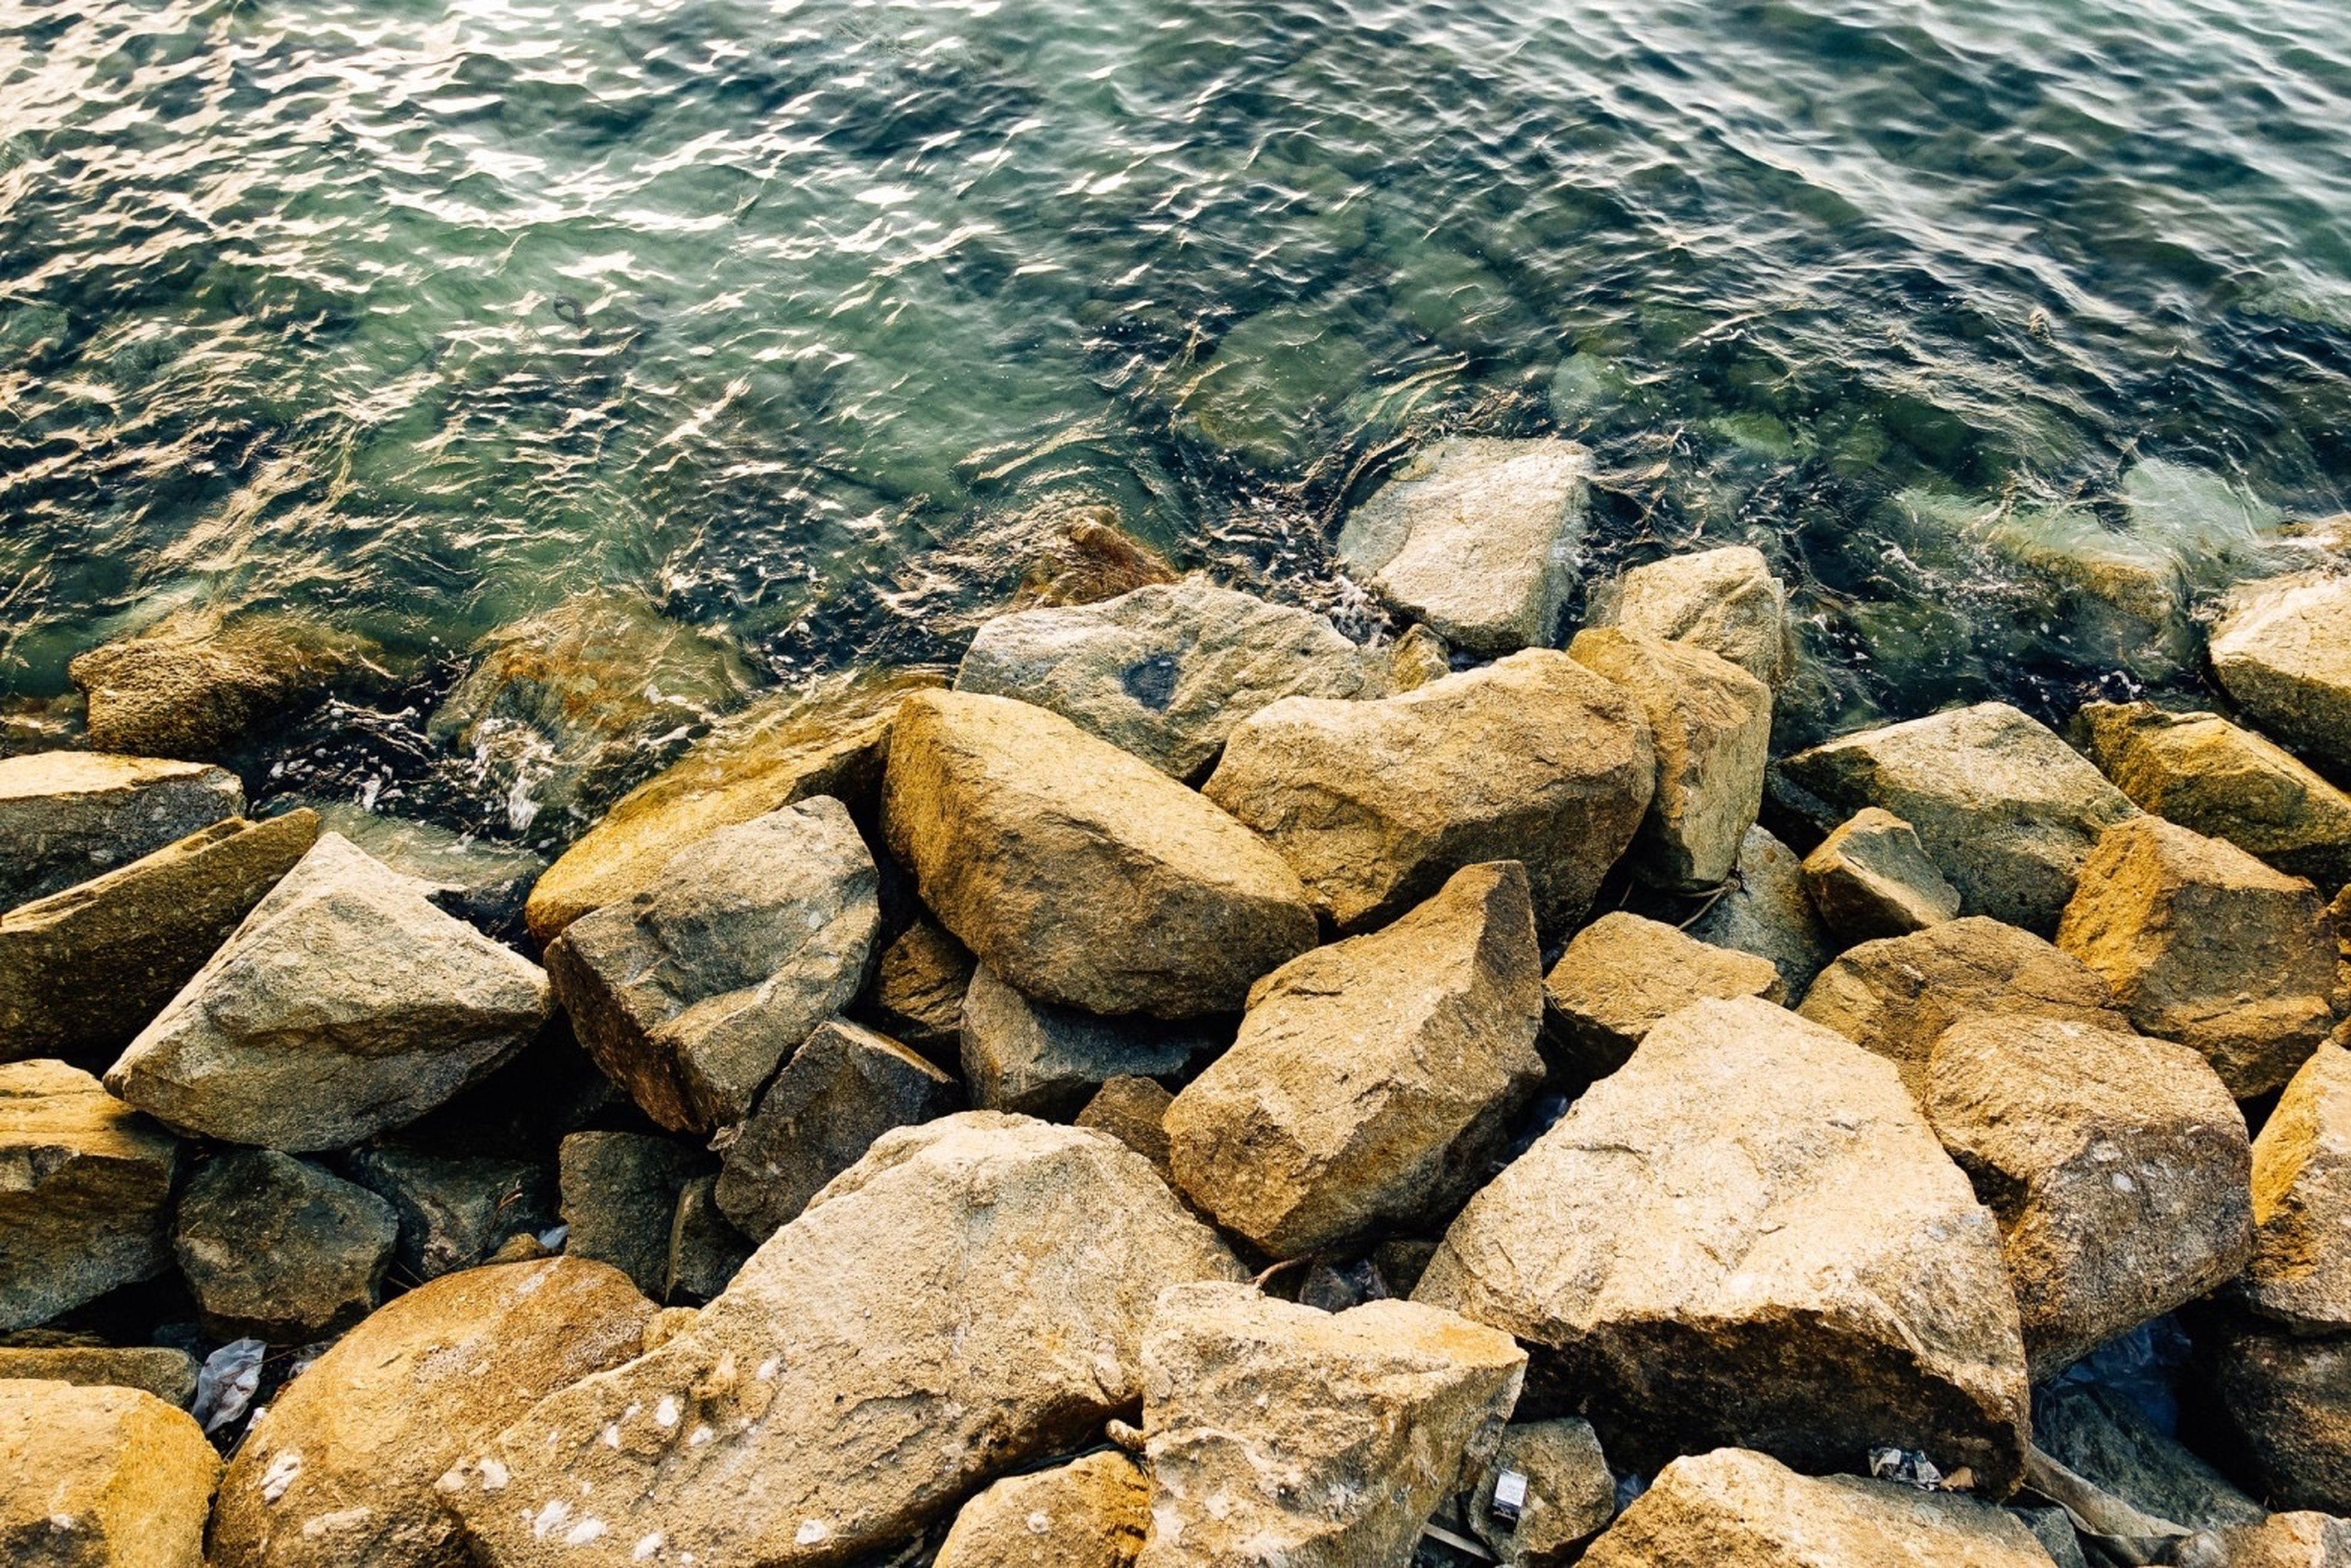 water, rock - object, stone - object, high angle view, nature, pebble, sea, textured, rock, stone, tranquility, day, outdoors, river, shore, beach, beauty in nature, rippled, no people, sunlight